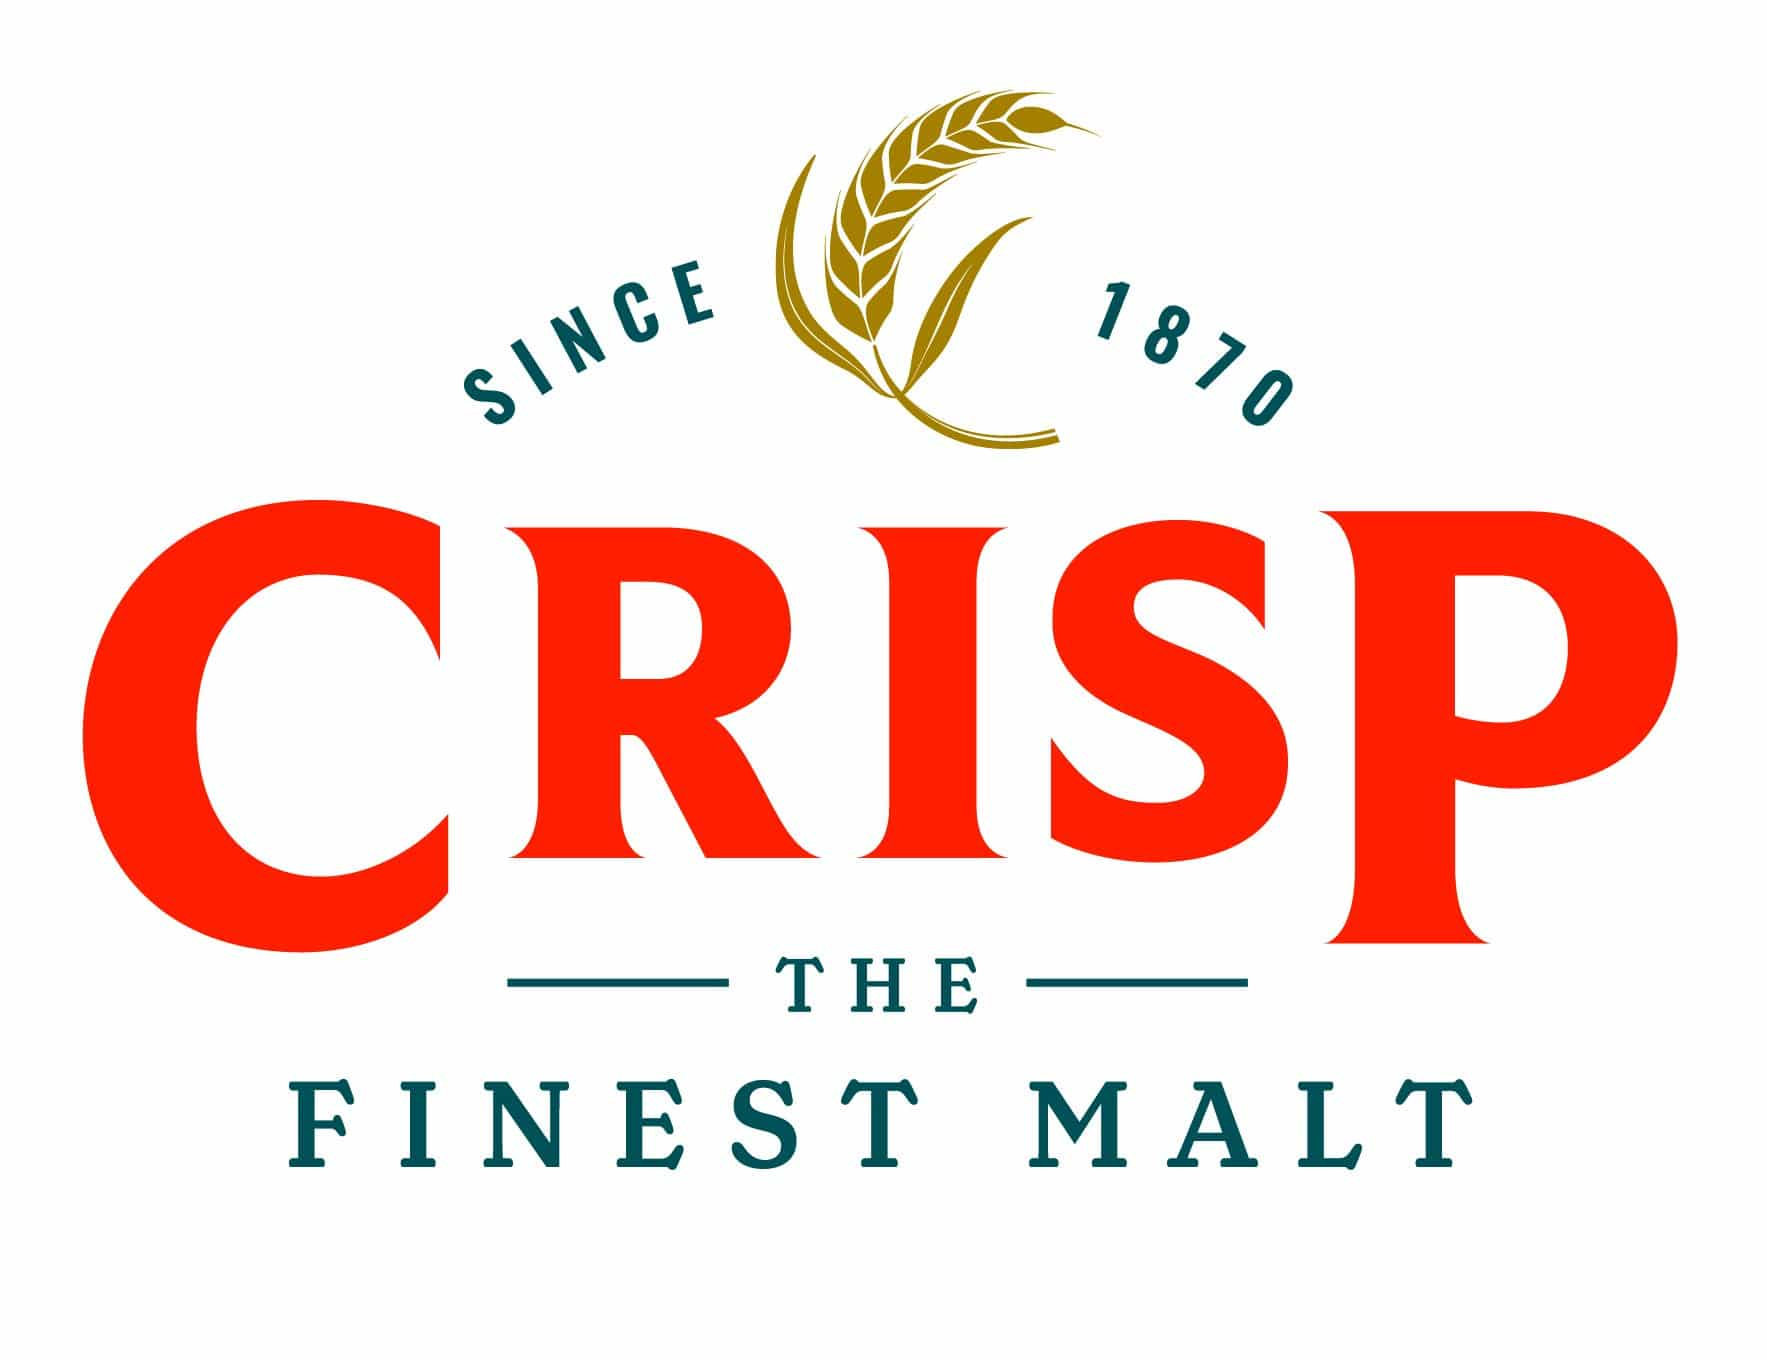 Crisp Malt logo representing malt products and malt specifications